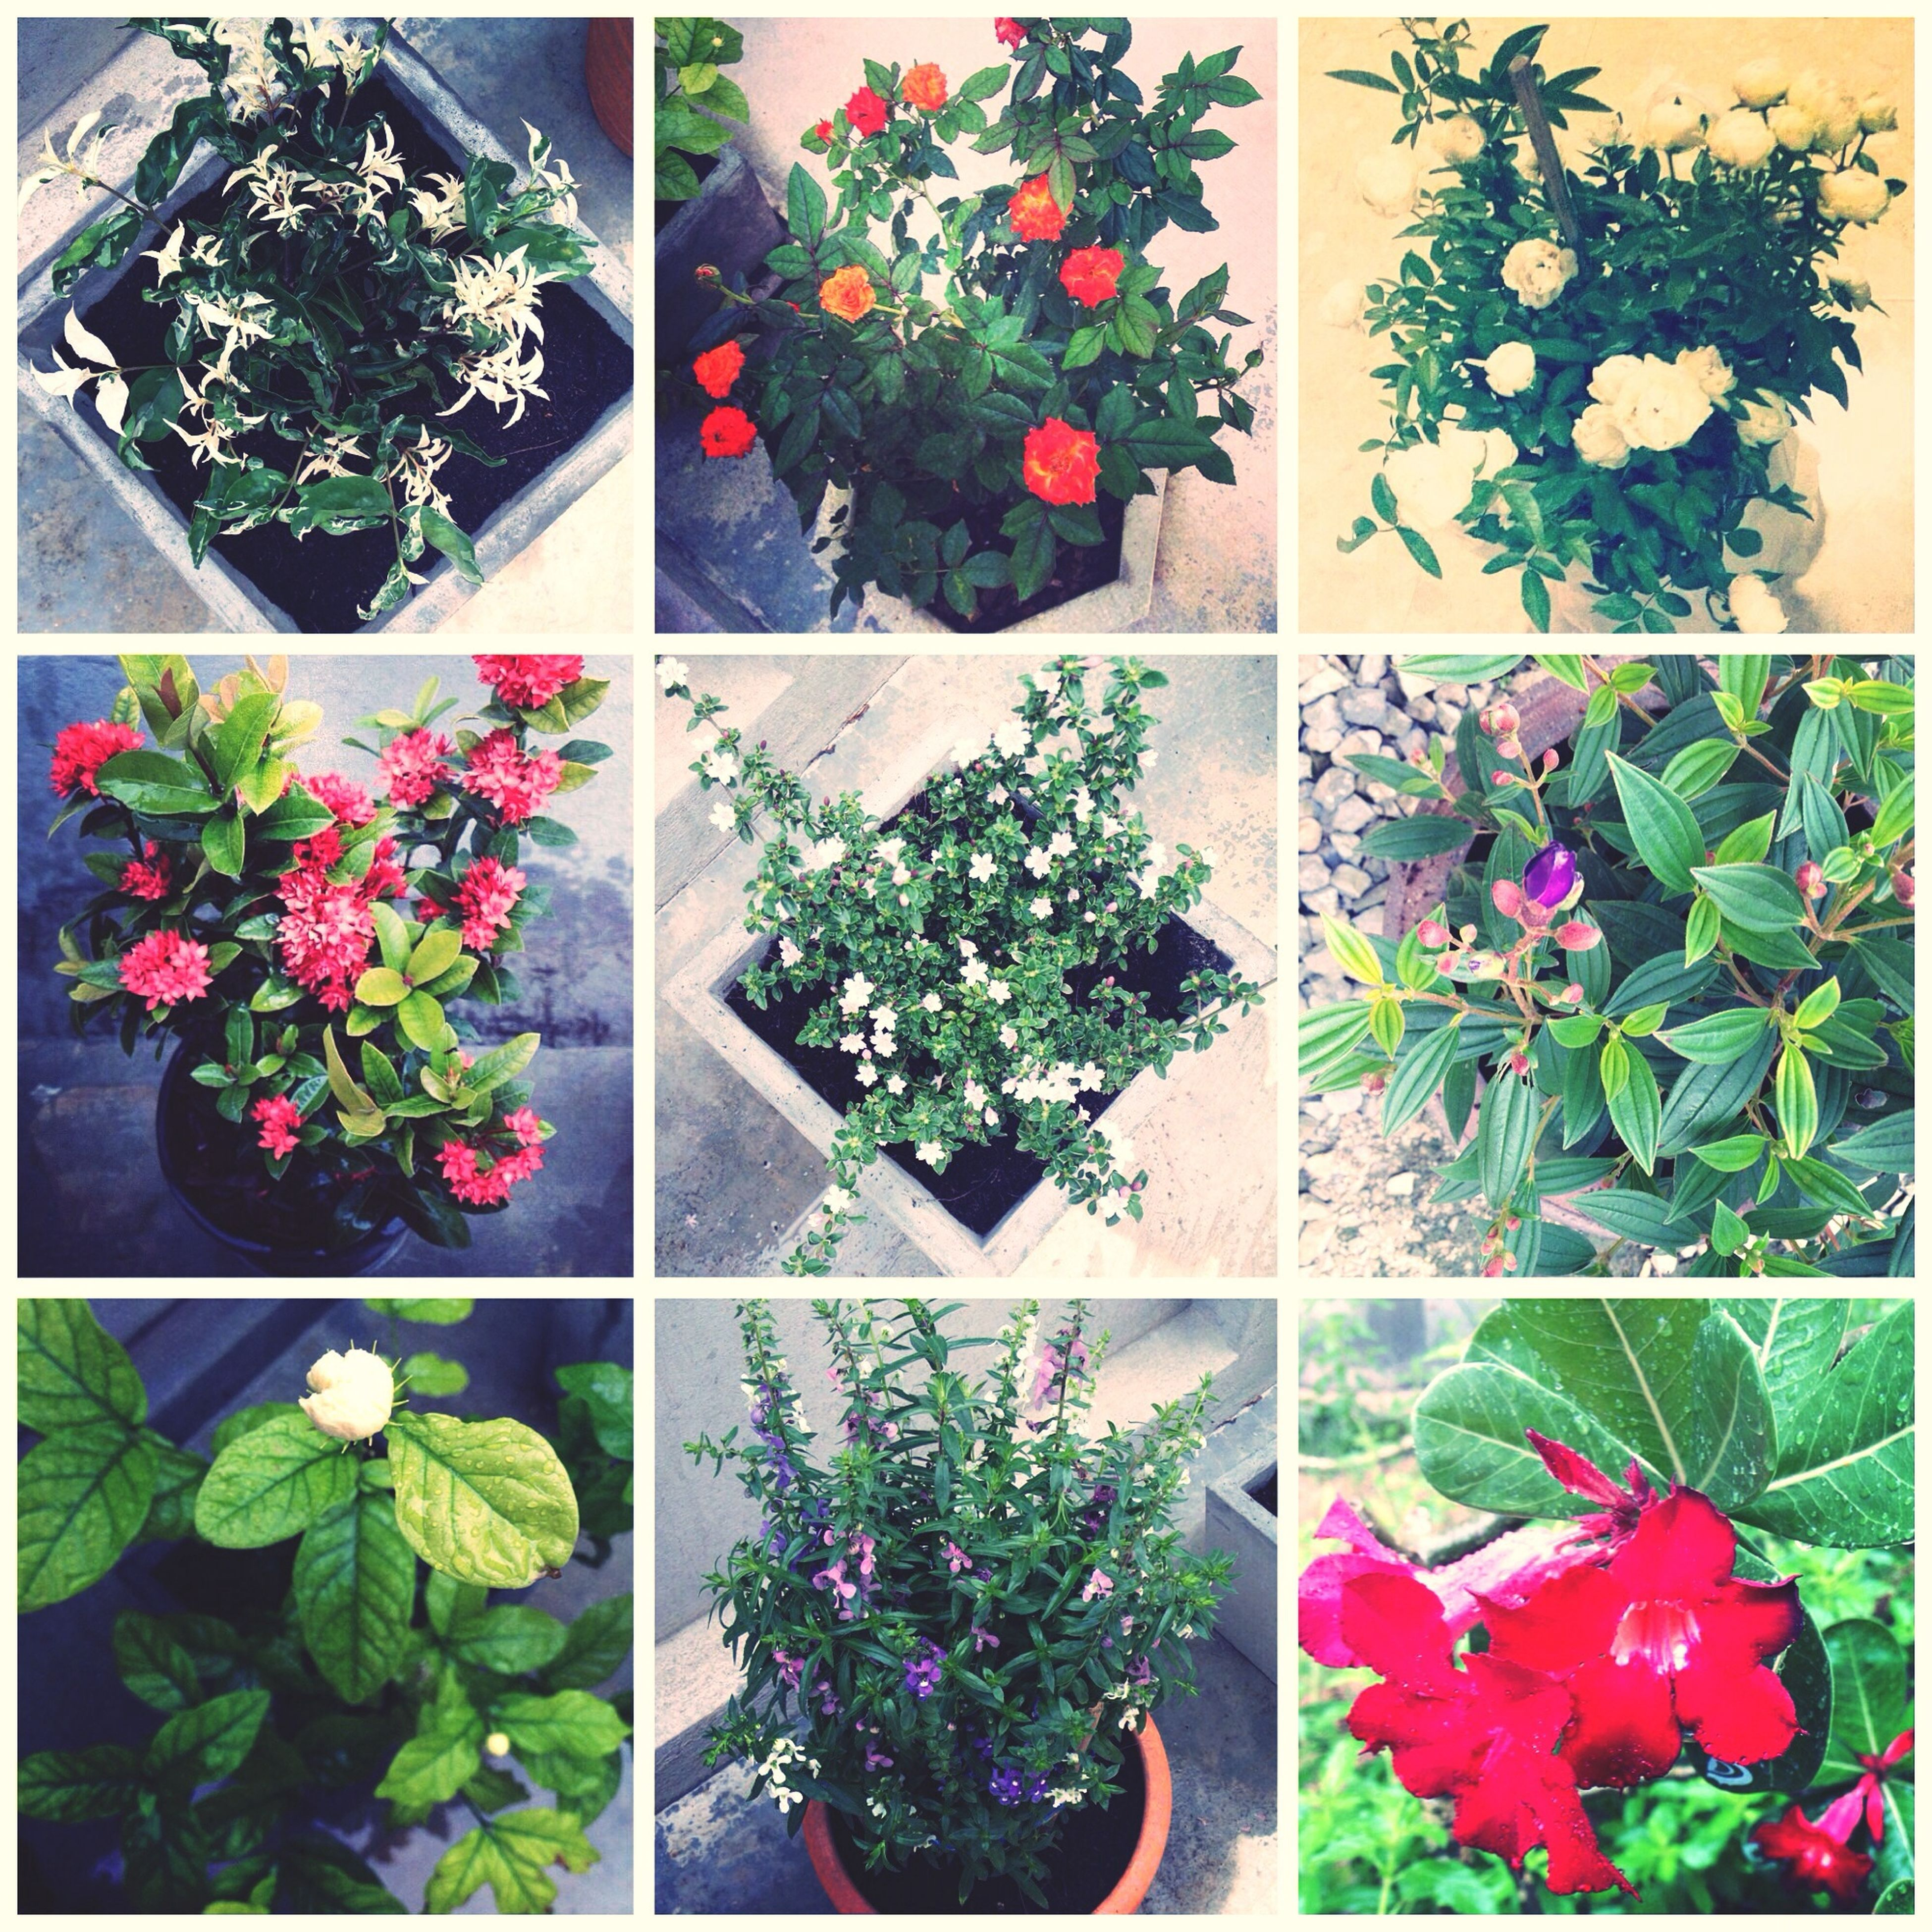 growth, plant, leaf, flower, potted plant, transfer print, green color, red, nature, auto post production filter, freshness, green, beauty in nature, window, flower pot, day, tree, indoors, no people